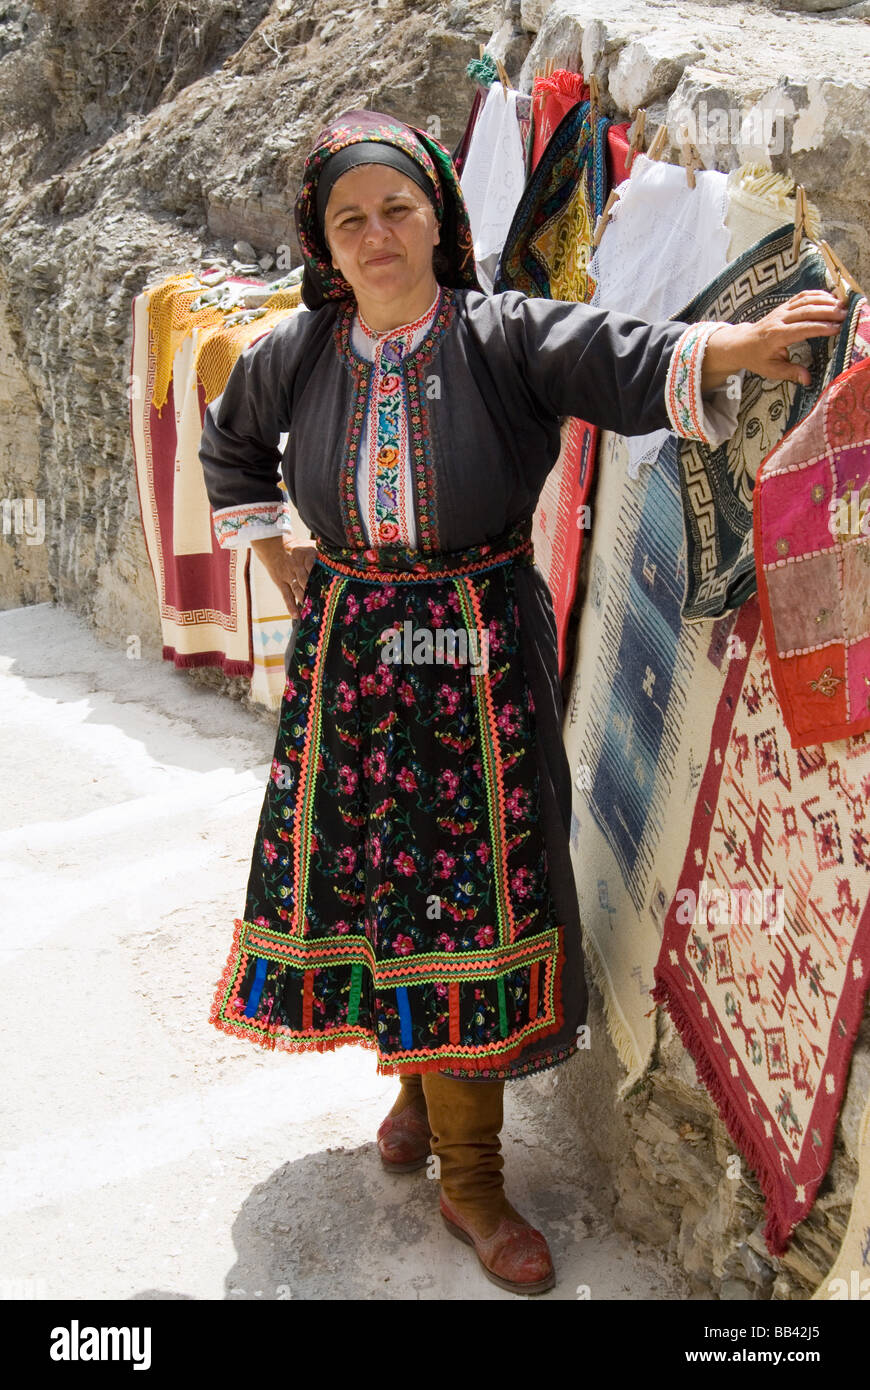 Greek Island Karpathos: Woman with traditional dress in the mountain village Olympos. Stock Photo